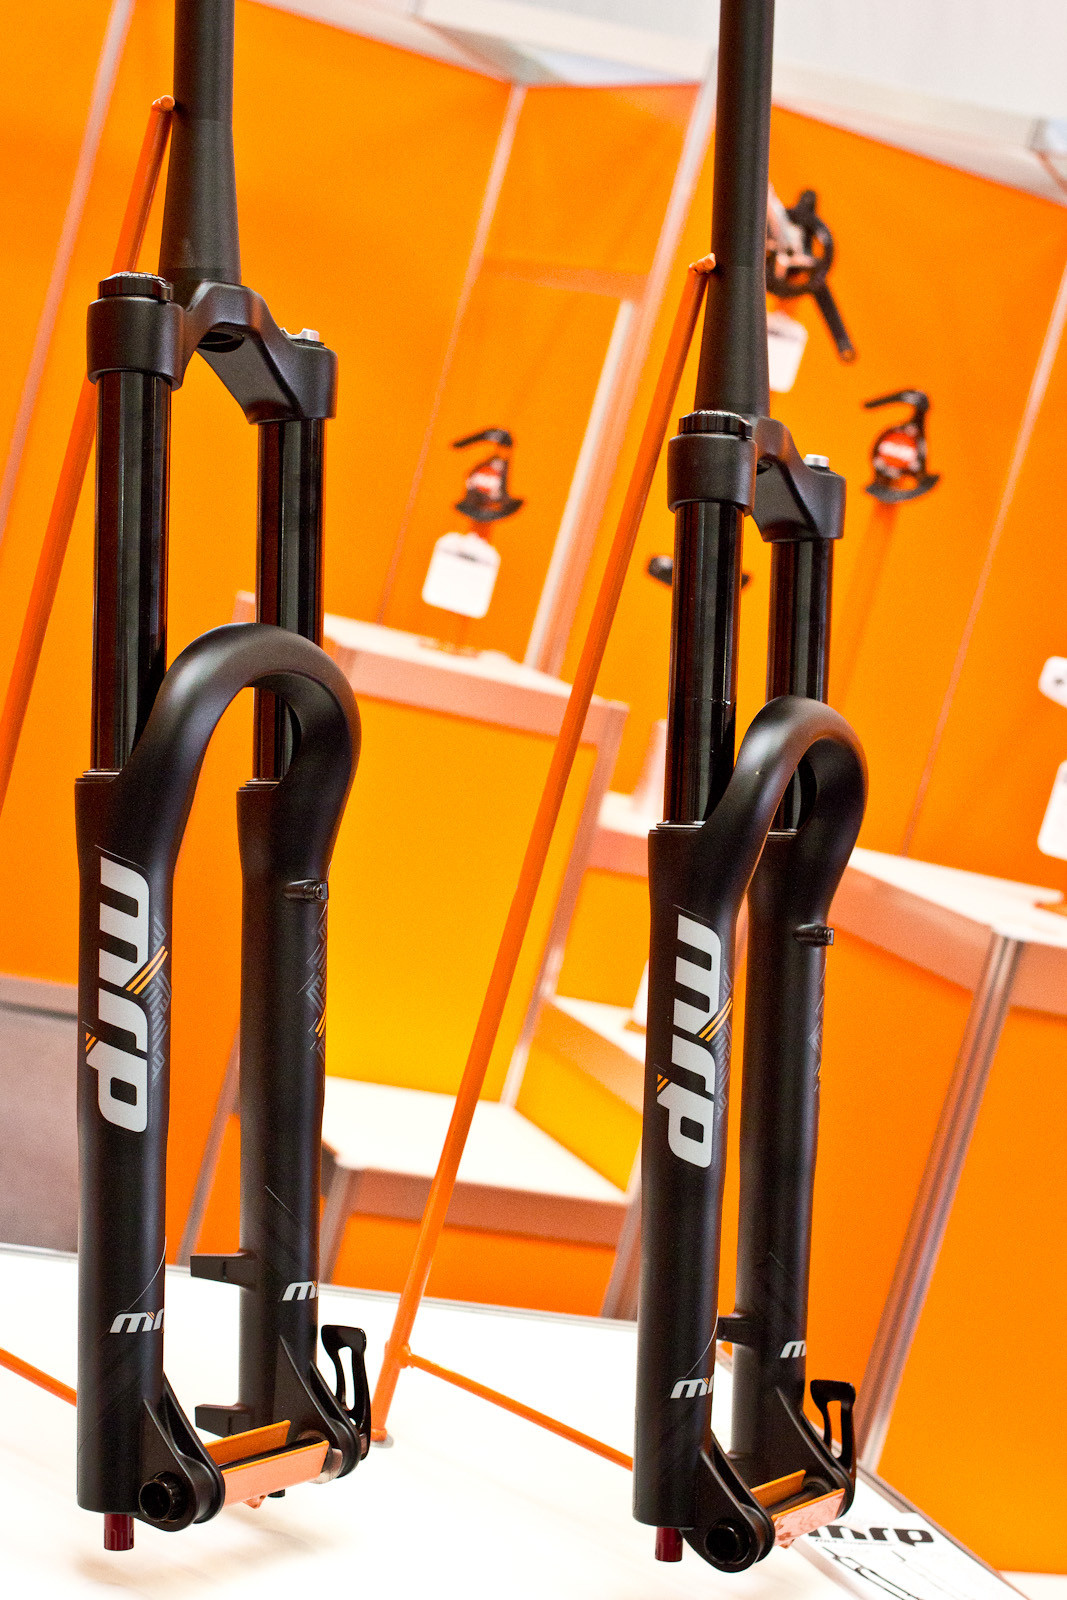 MRP Stage Forks - 2014 Mountain Bike Components at Eurobike 2013 - Mountain Biking Pictures - Vital MTB